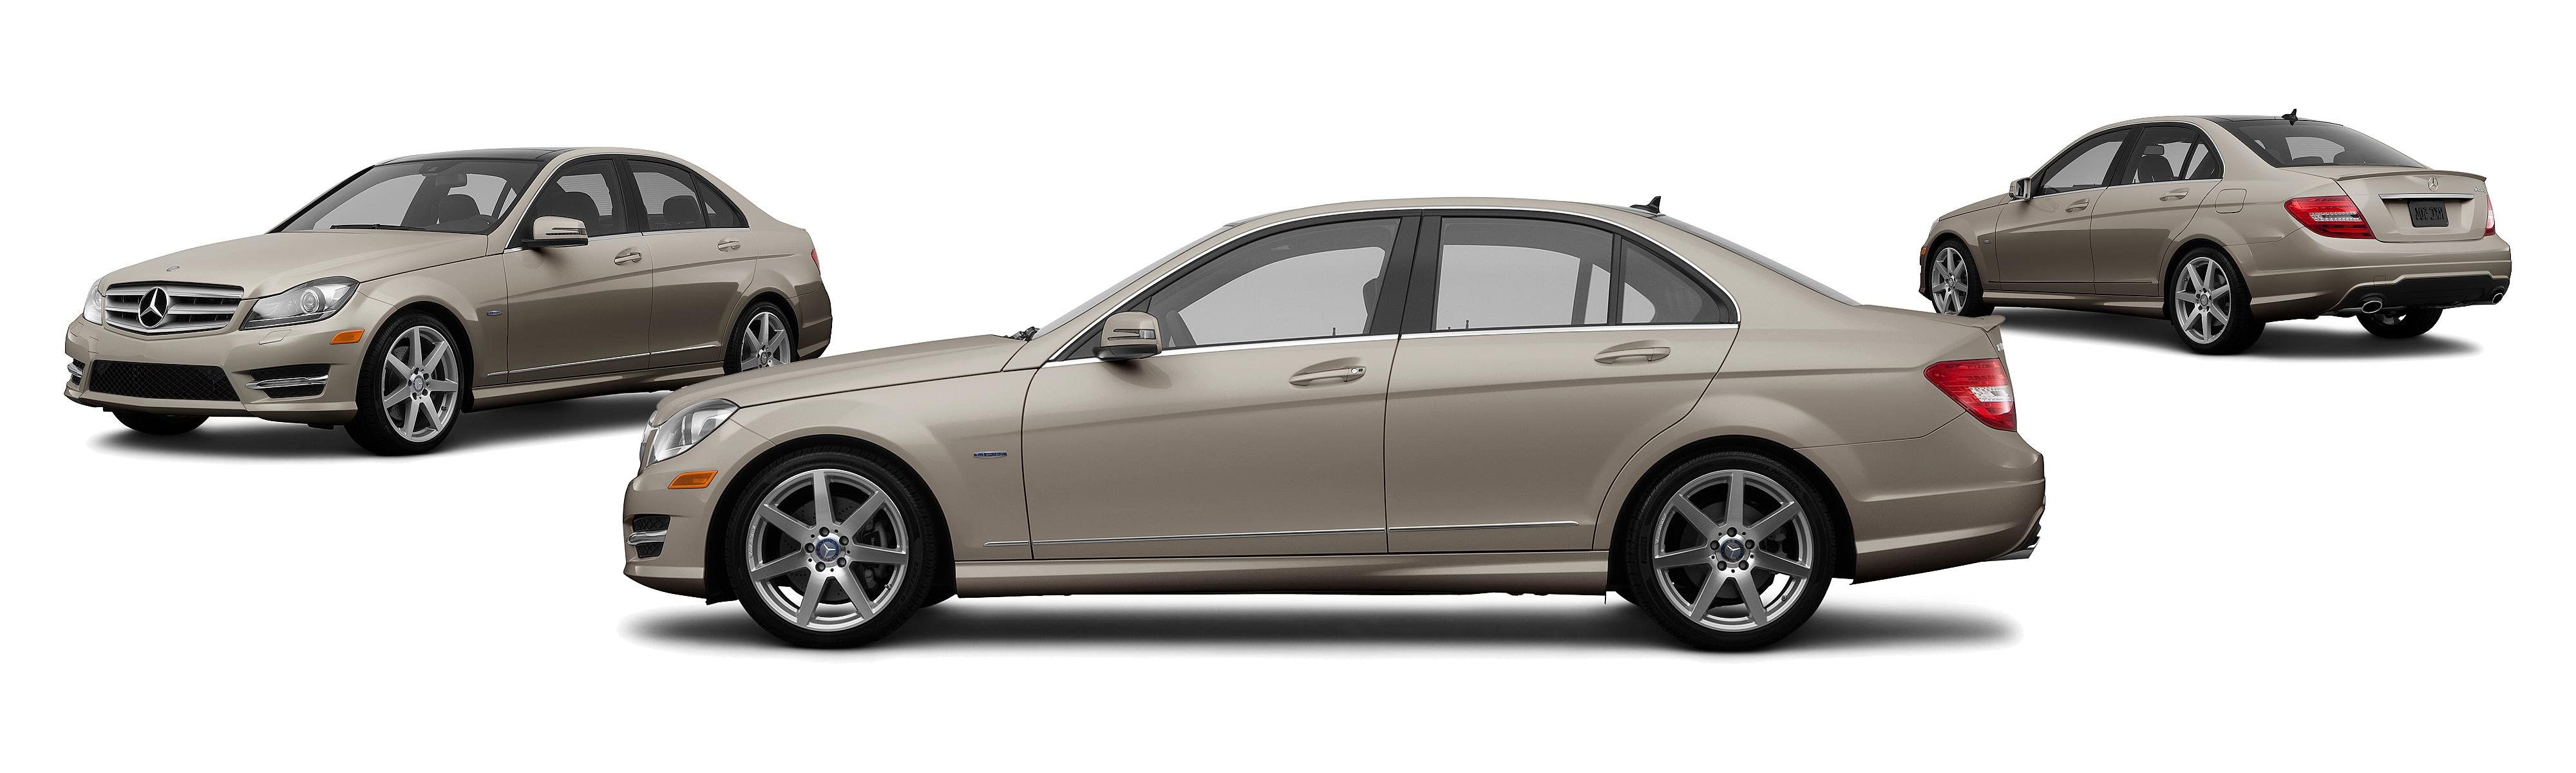 2012 Mercedes Benz C Class C 63 AMG 4dr Sedan Research GrooveCar